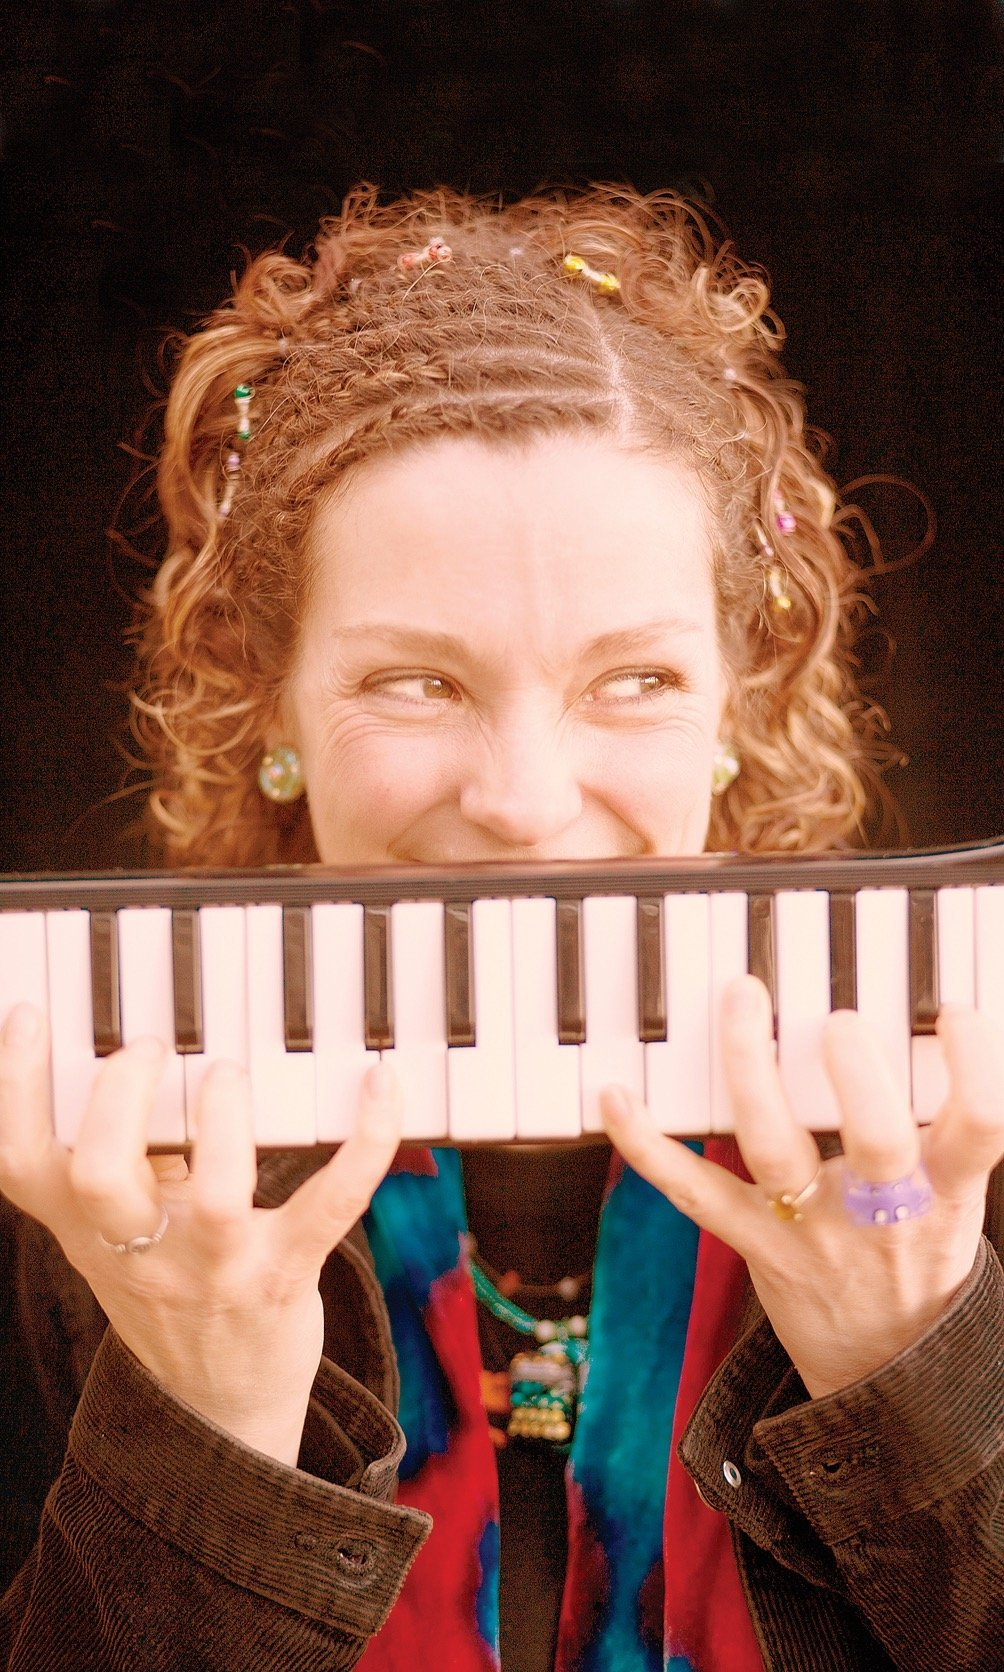 Karen Tweed and her melodica